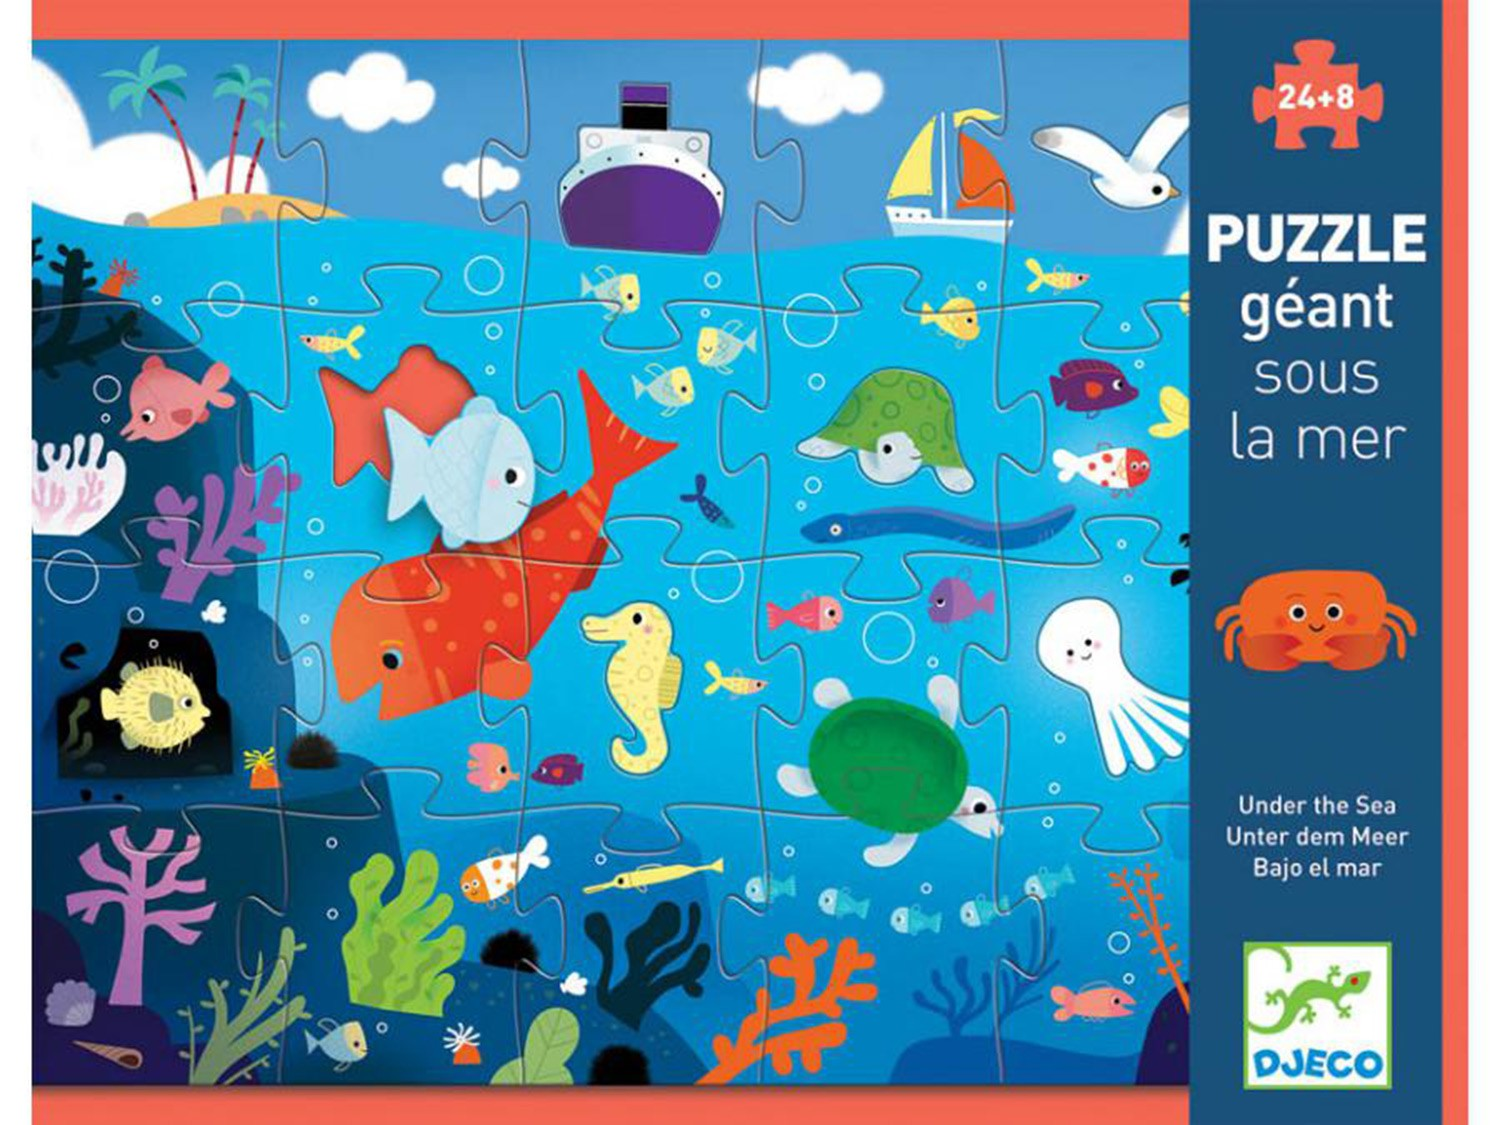 DJECO GIANT PUZZLE - UNDER THE SEE 24+8 GRANDI PEZZI DJ07116